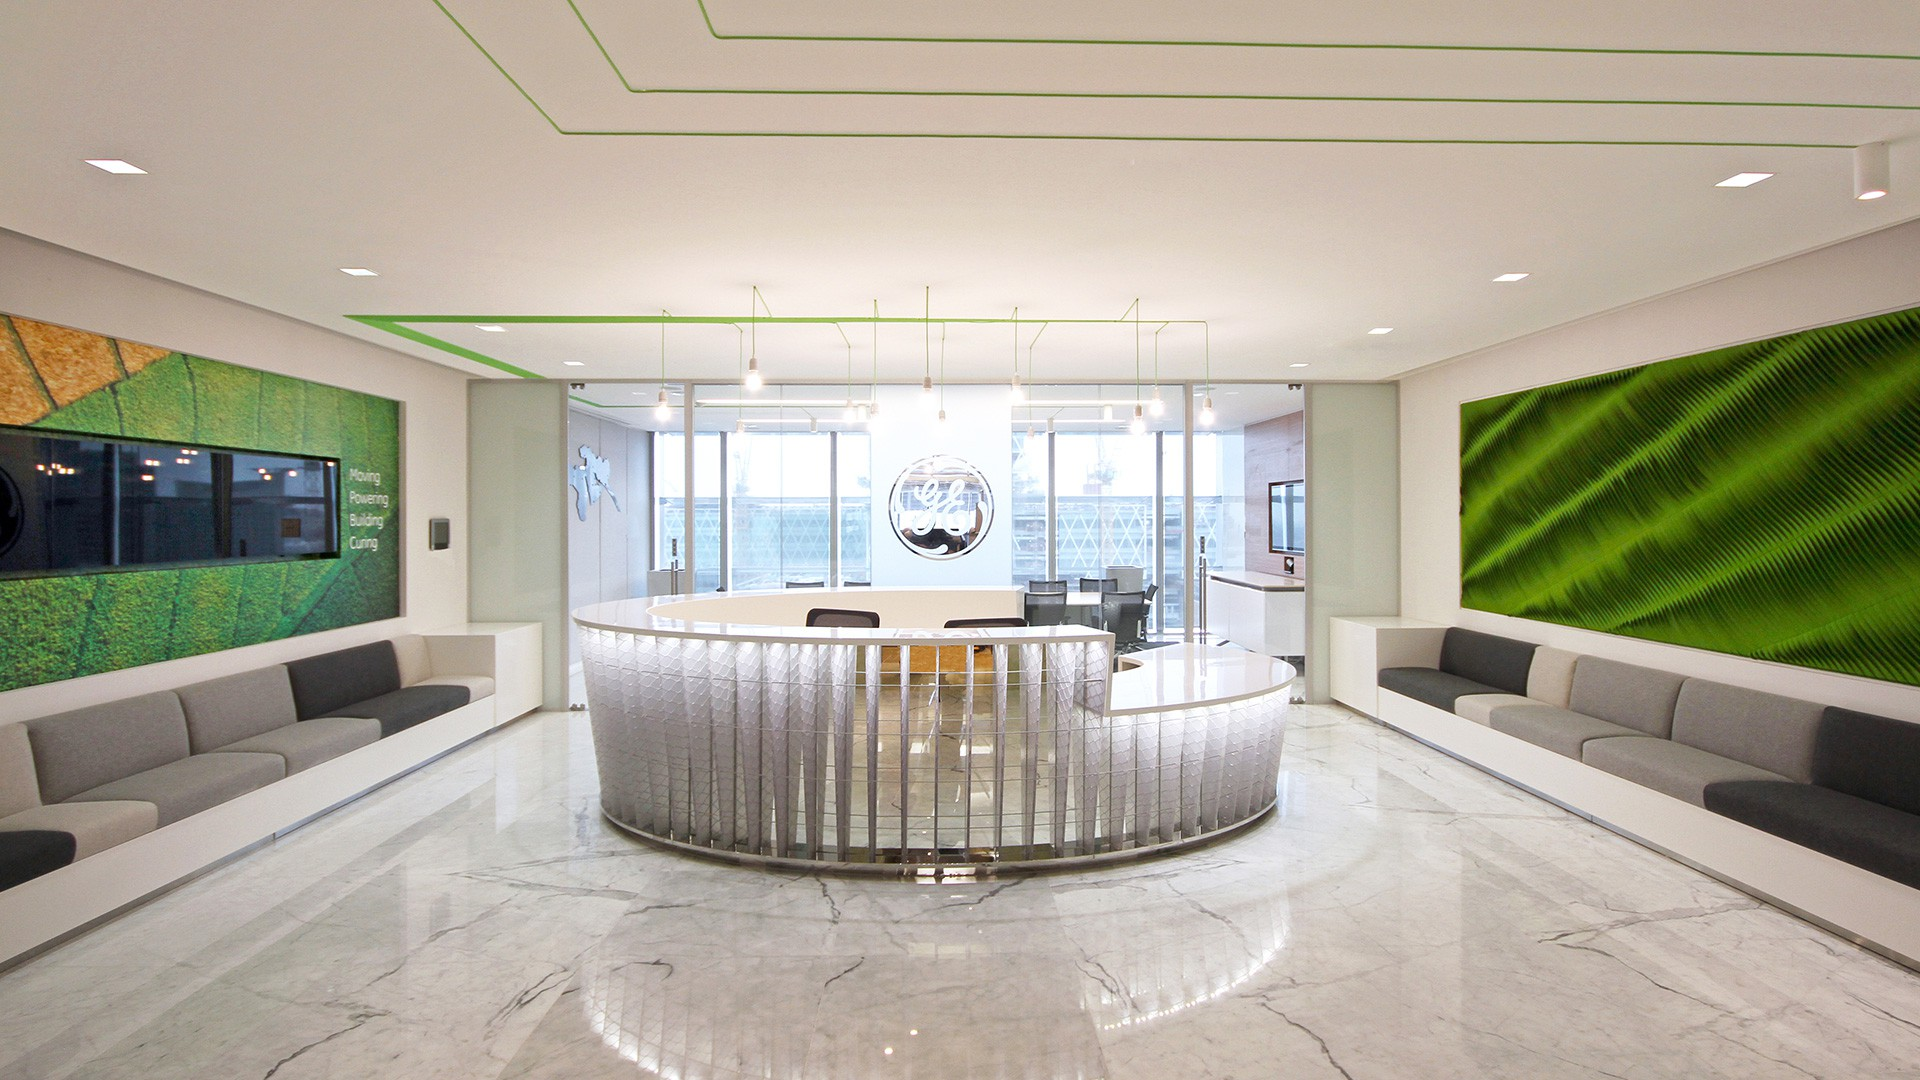 One Solution, GE Offices